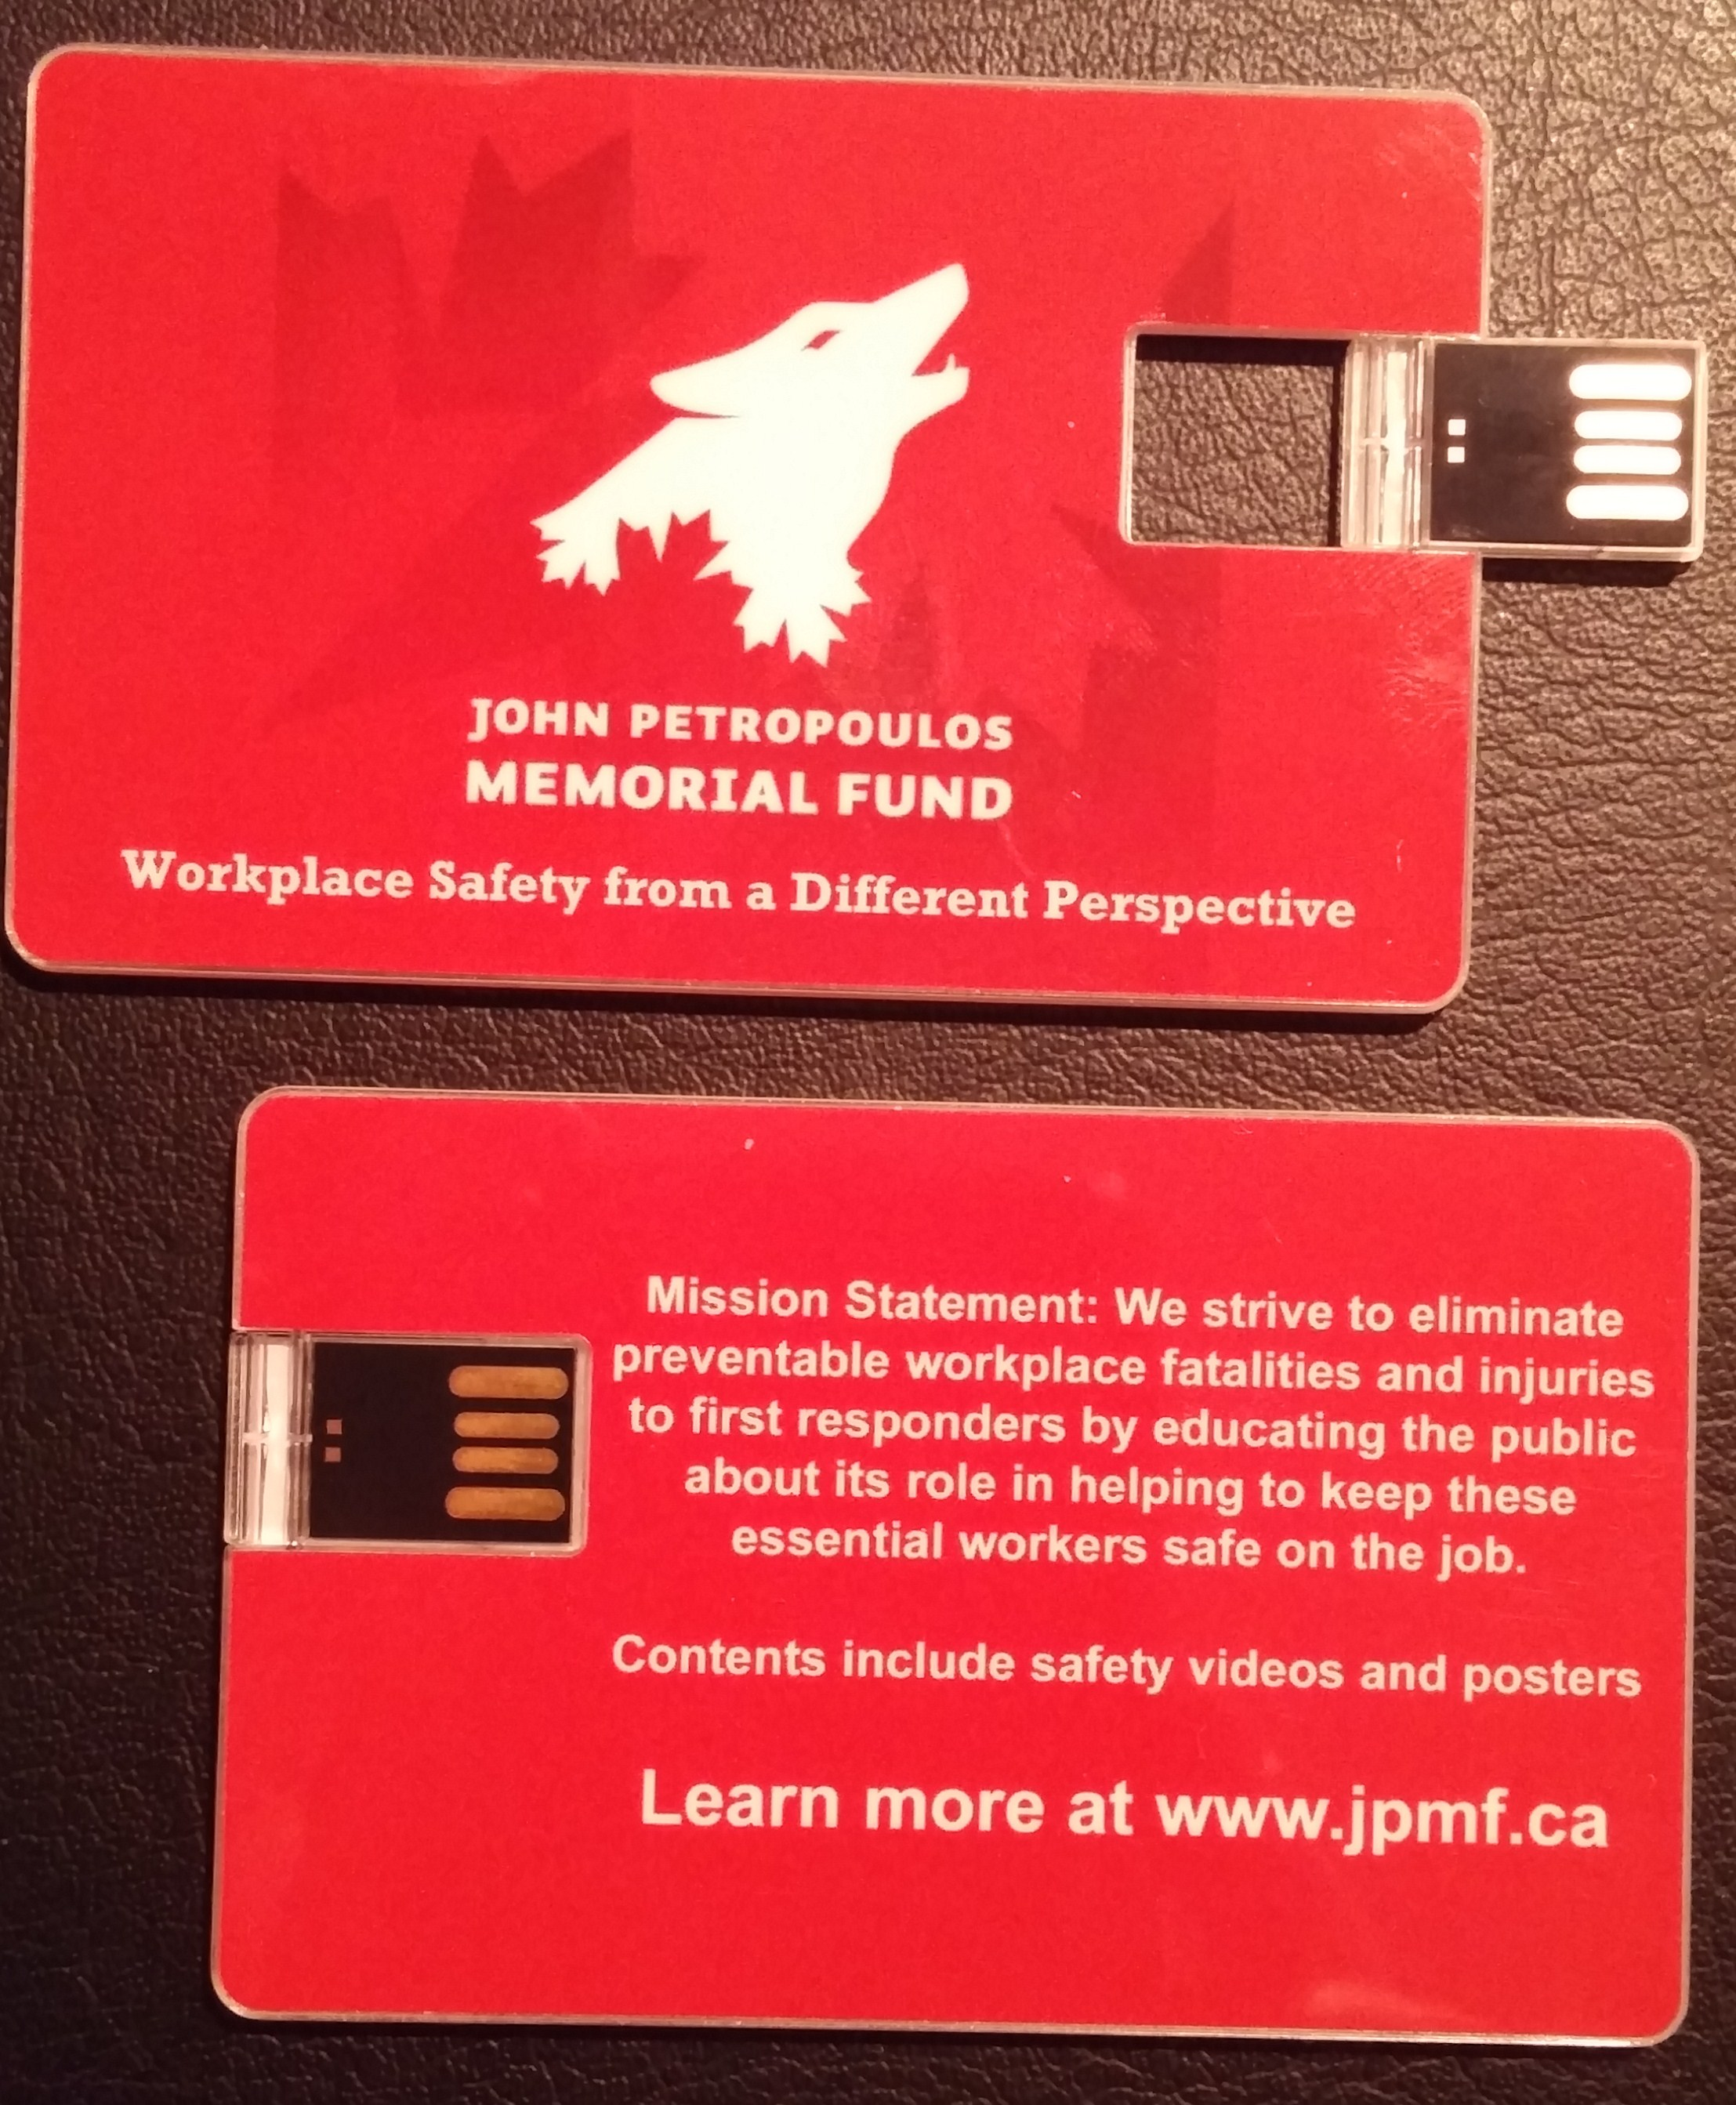 http://www.jpmf.ca/media/JPMF_USB_Card1.jpg